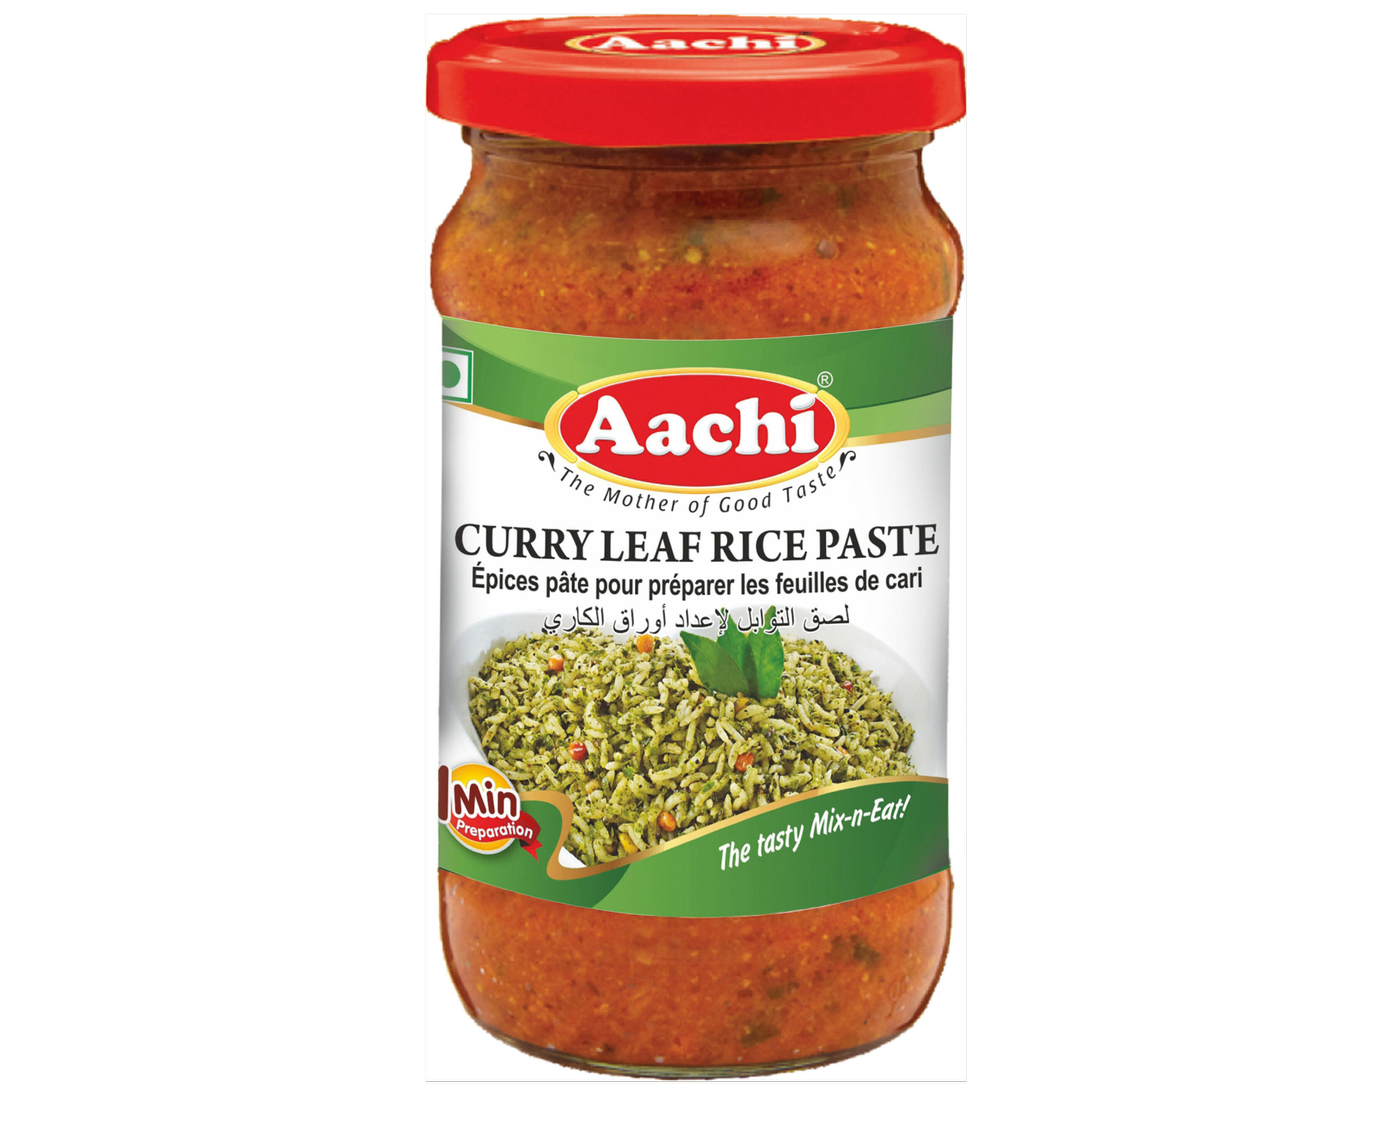 Aachi Curry Leaf Rice Paste